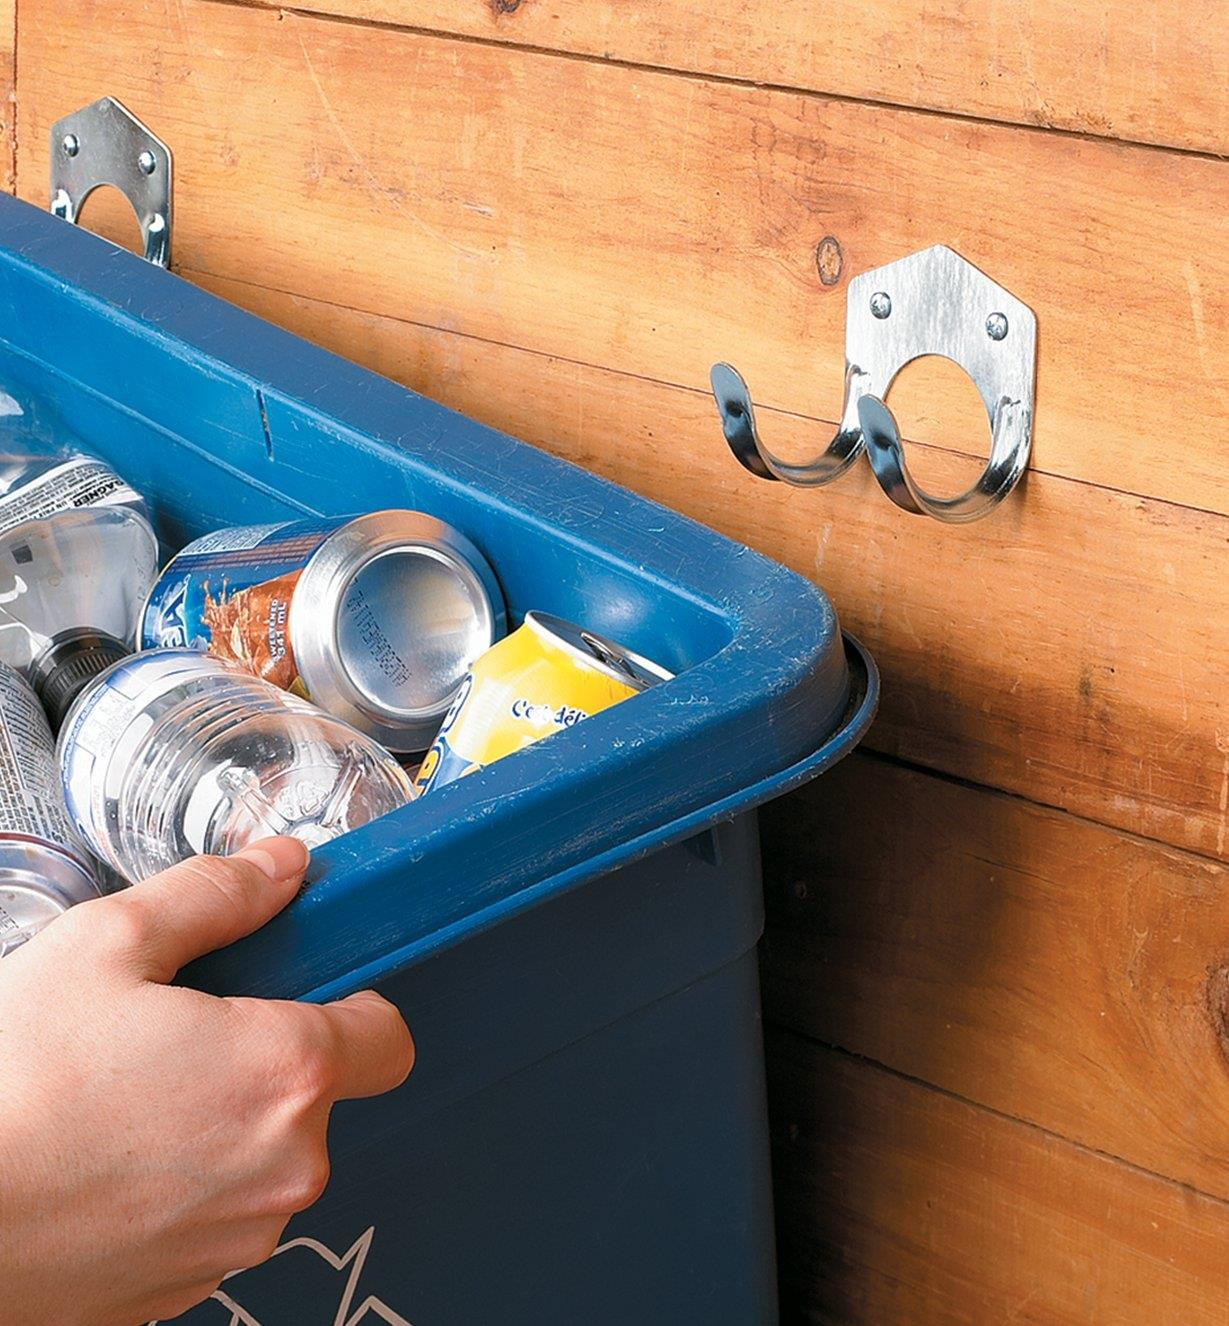 Two double hooks holding a recycling bin on a wall